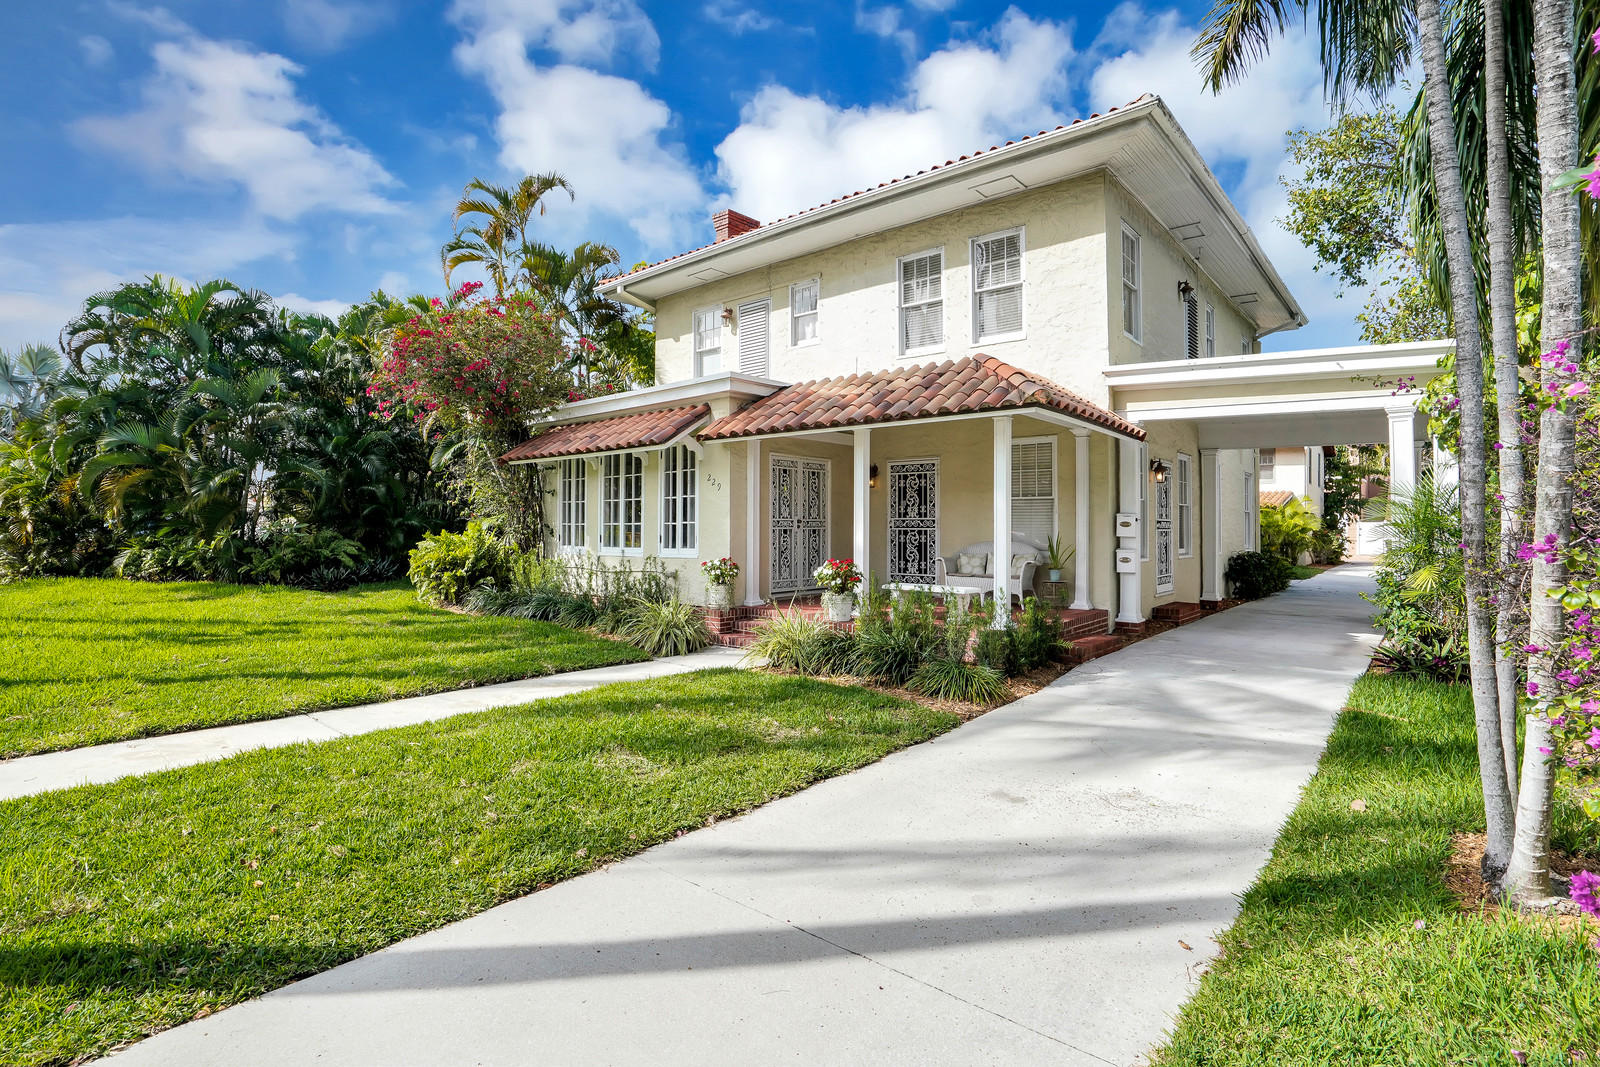 229 9th Street, West Palm Beach, Florida 33401, 5 Bedrooms Bedrooms, ,4.1 BathroomsBathrooms,A,Single family,9th,RX-10602217